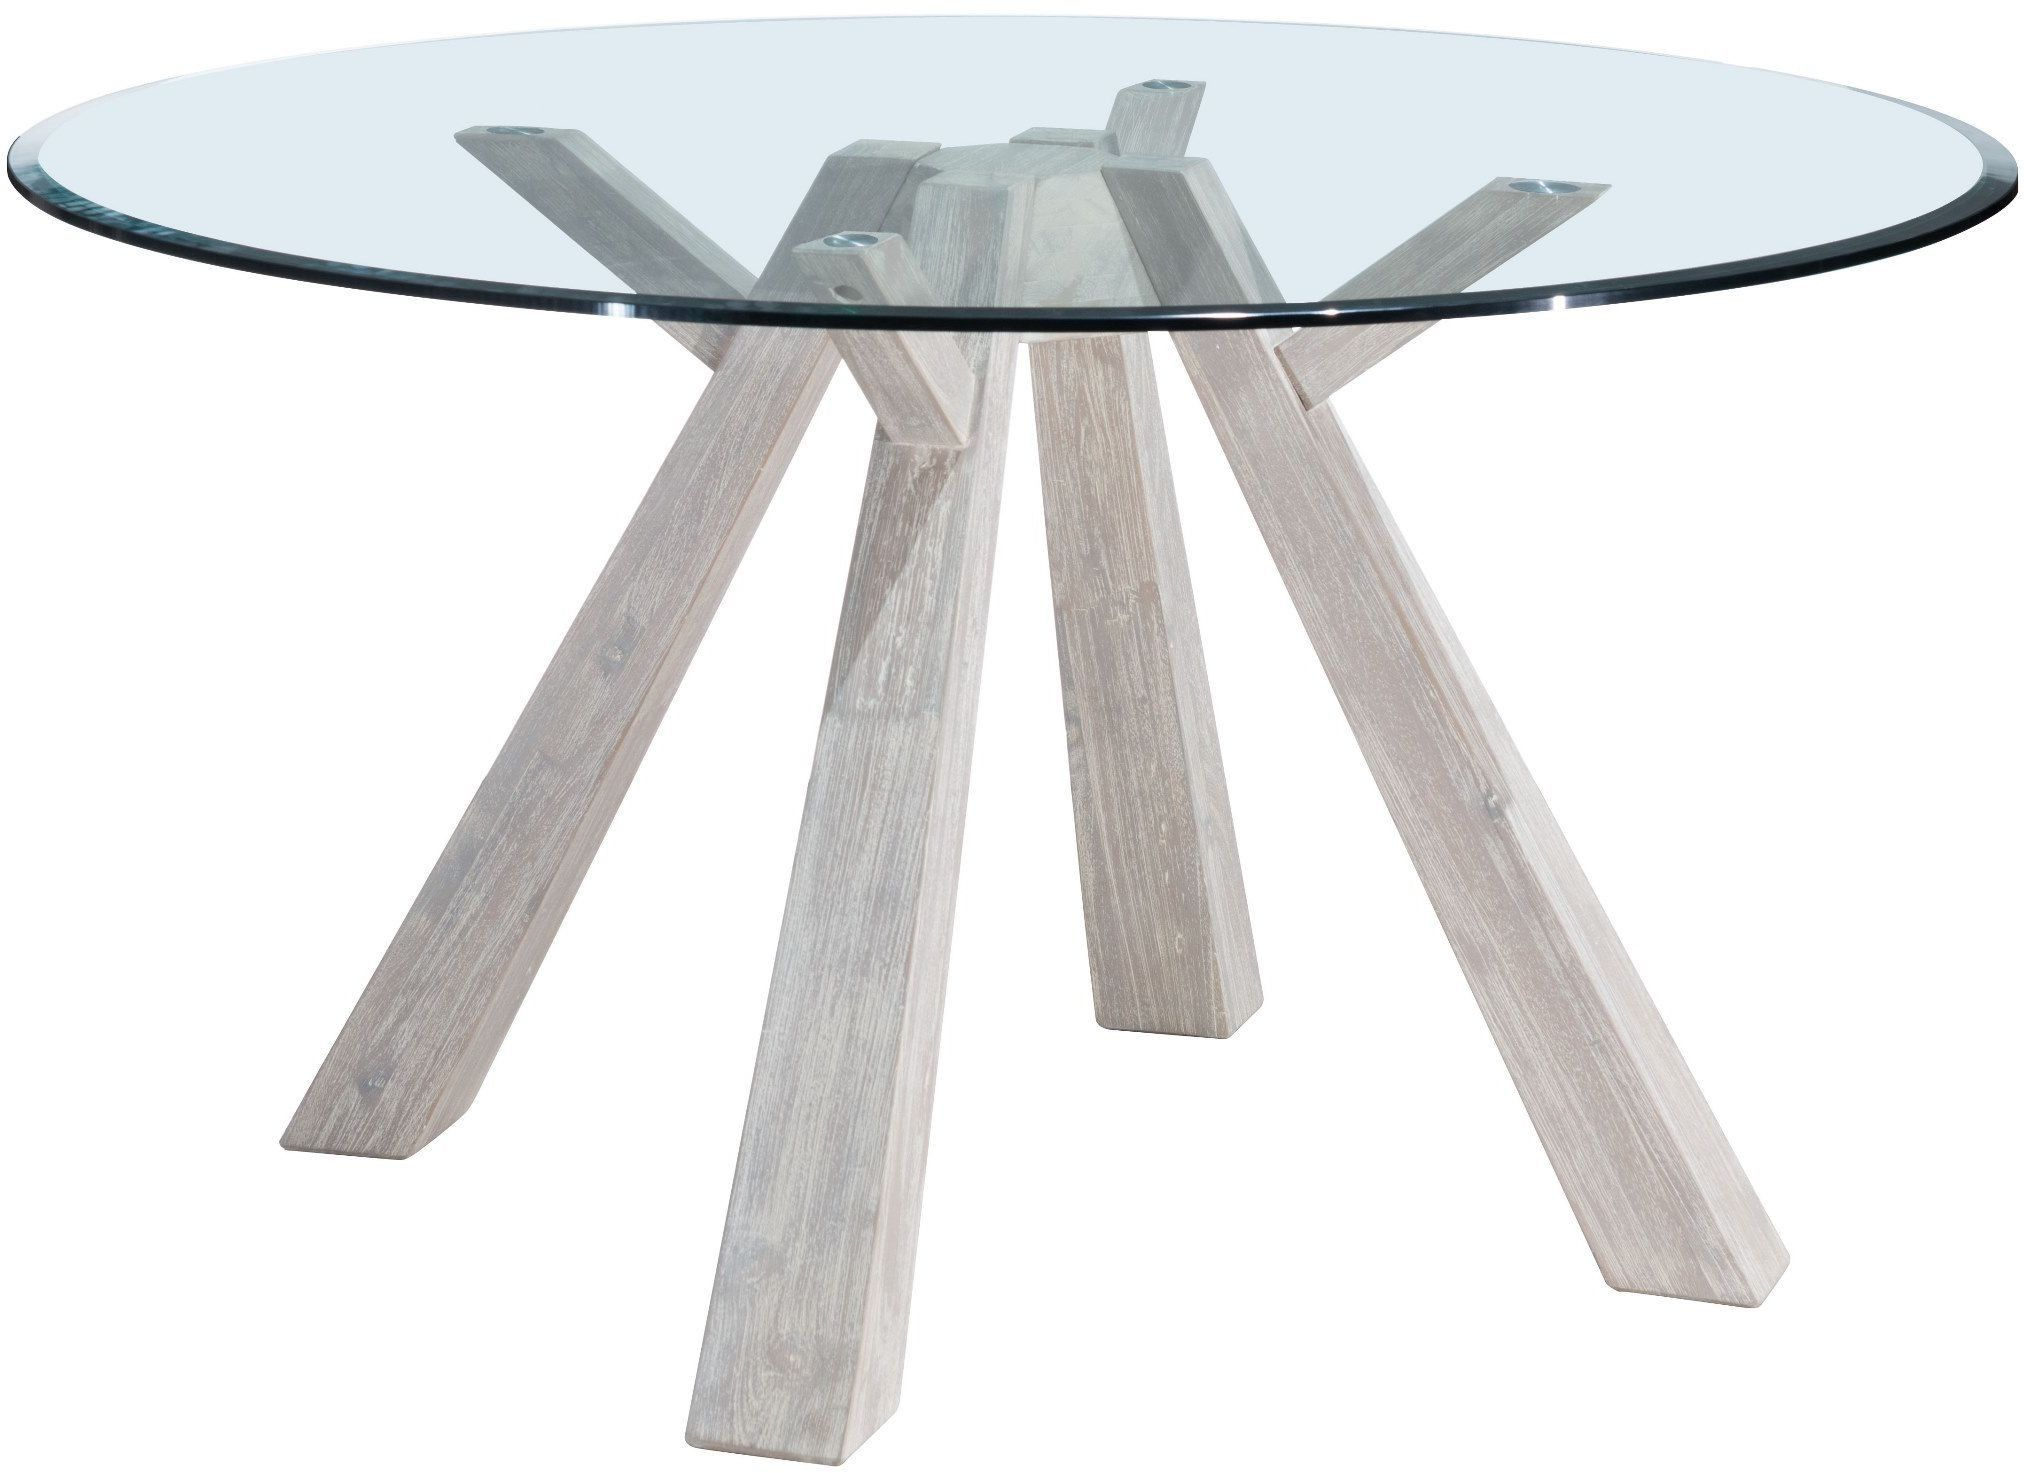 Https://colemanfurniture.com /beaumont Sun Drenched Acacia Stainless Steel Round Dining Table.htm